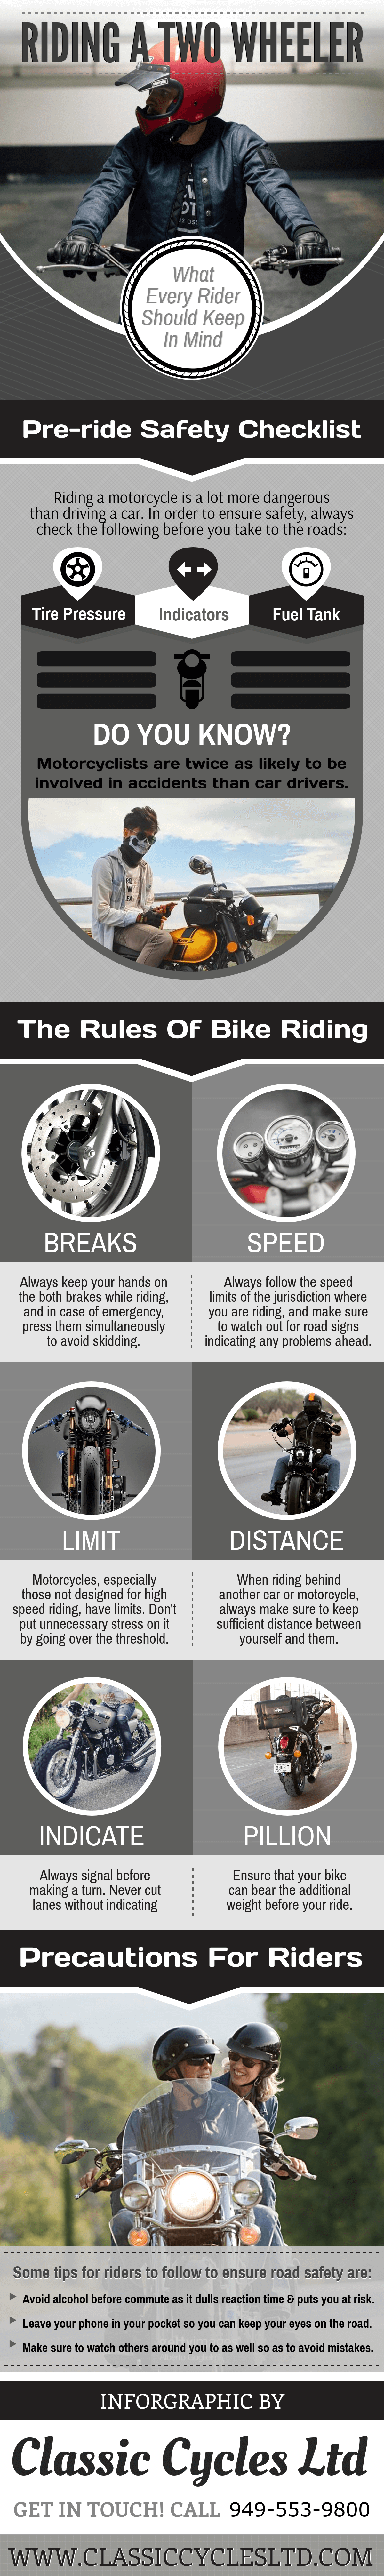 Pre-Ride Safety Checklist.png